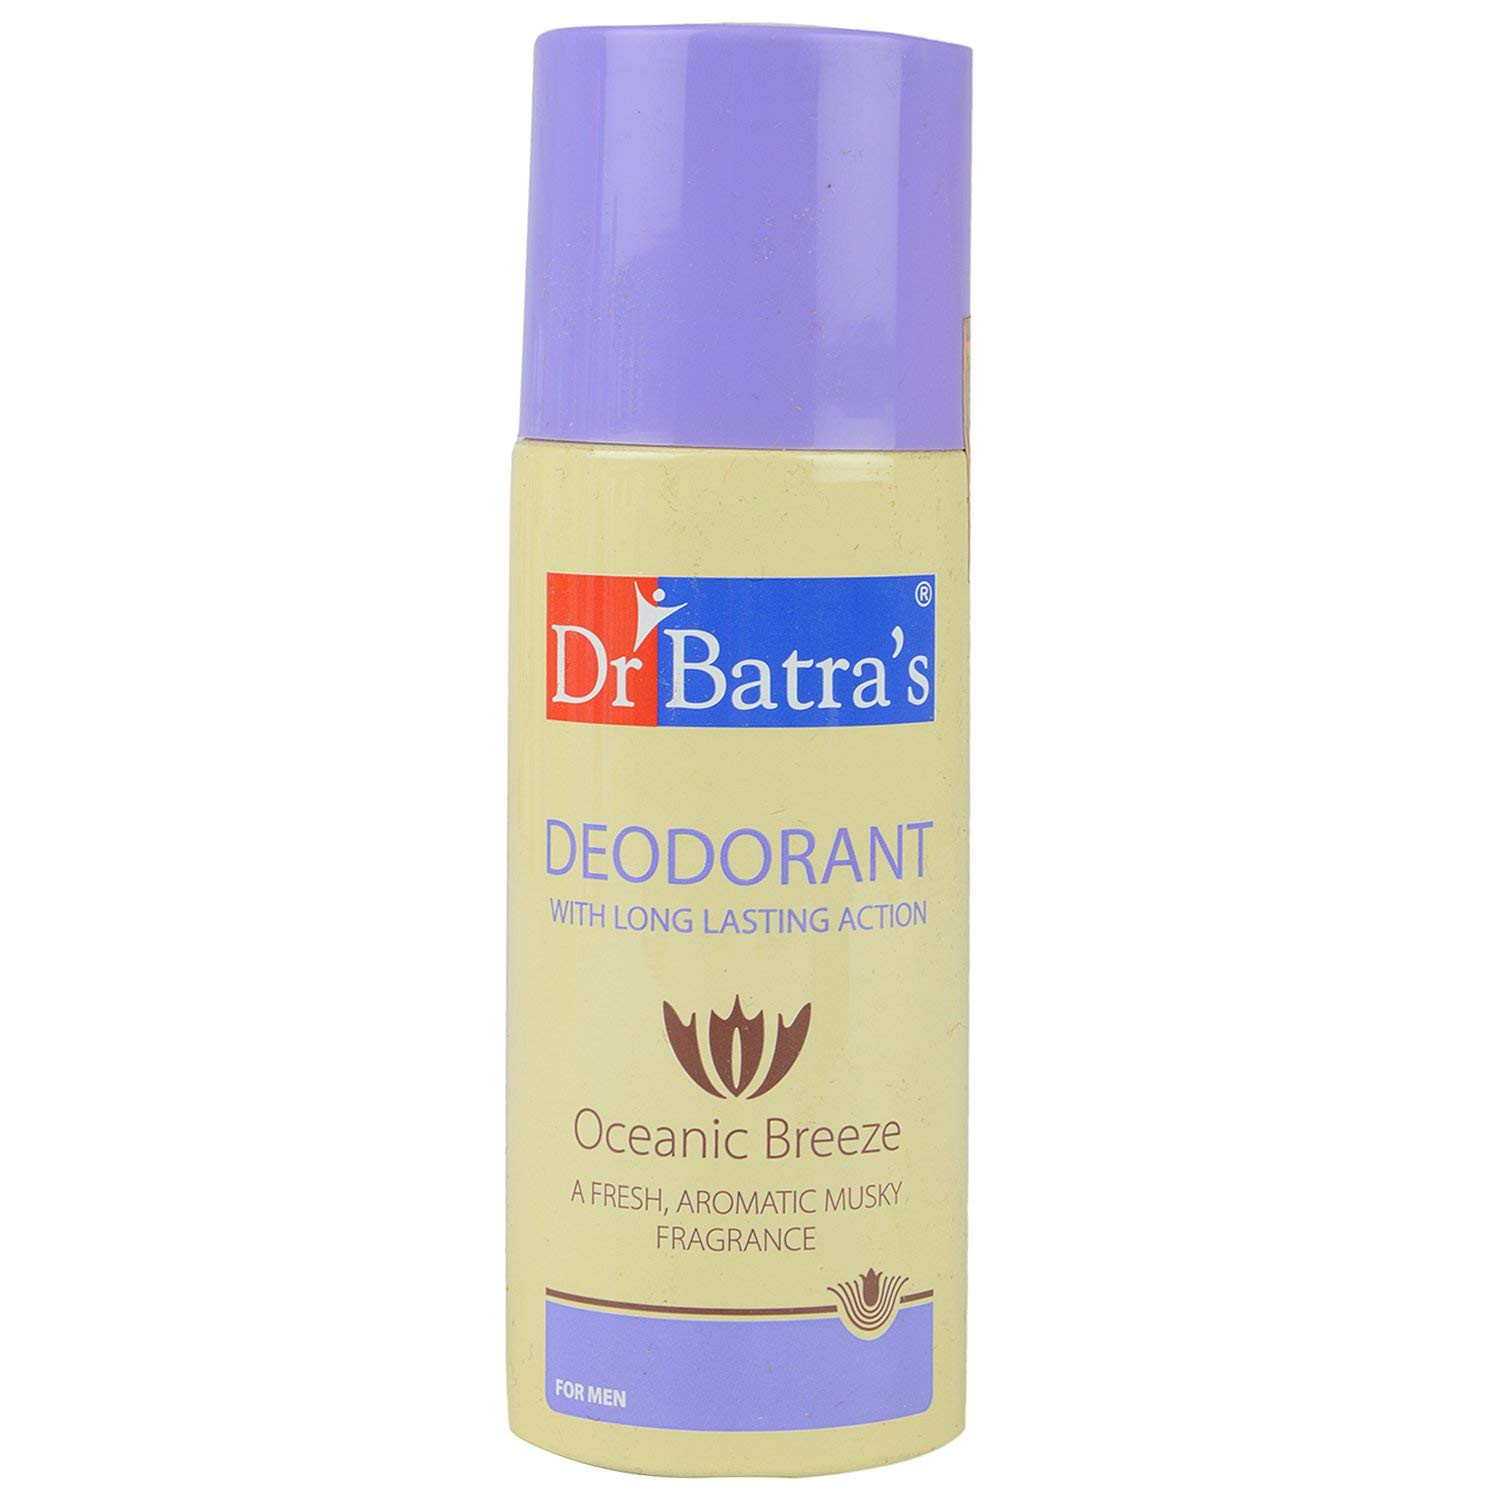 Dr Batras Deo for Men, 150ml